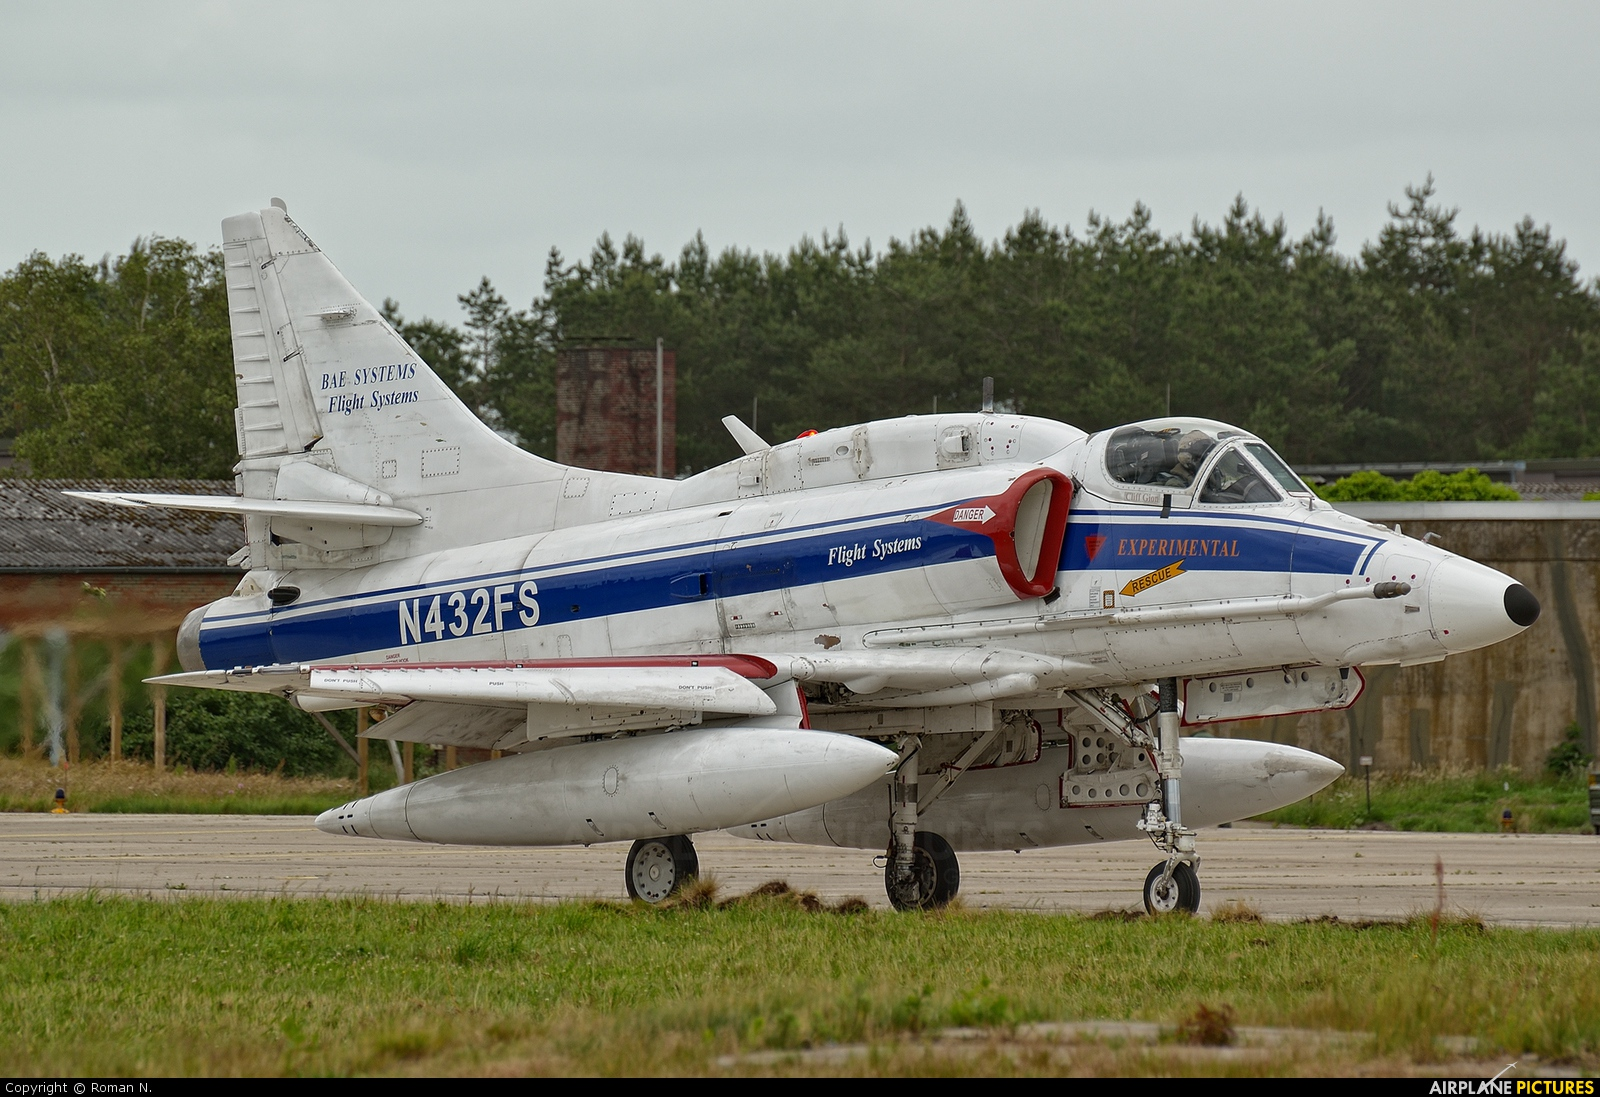 BAe Systems N432FS aircraft at Wittmundhafen